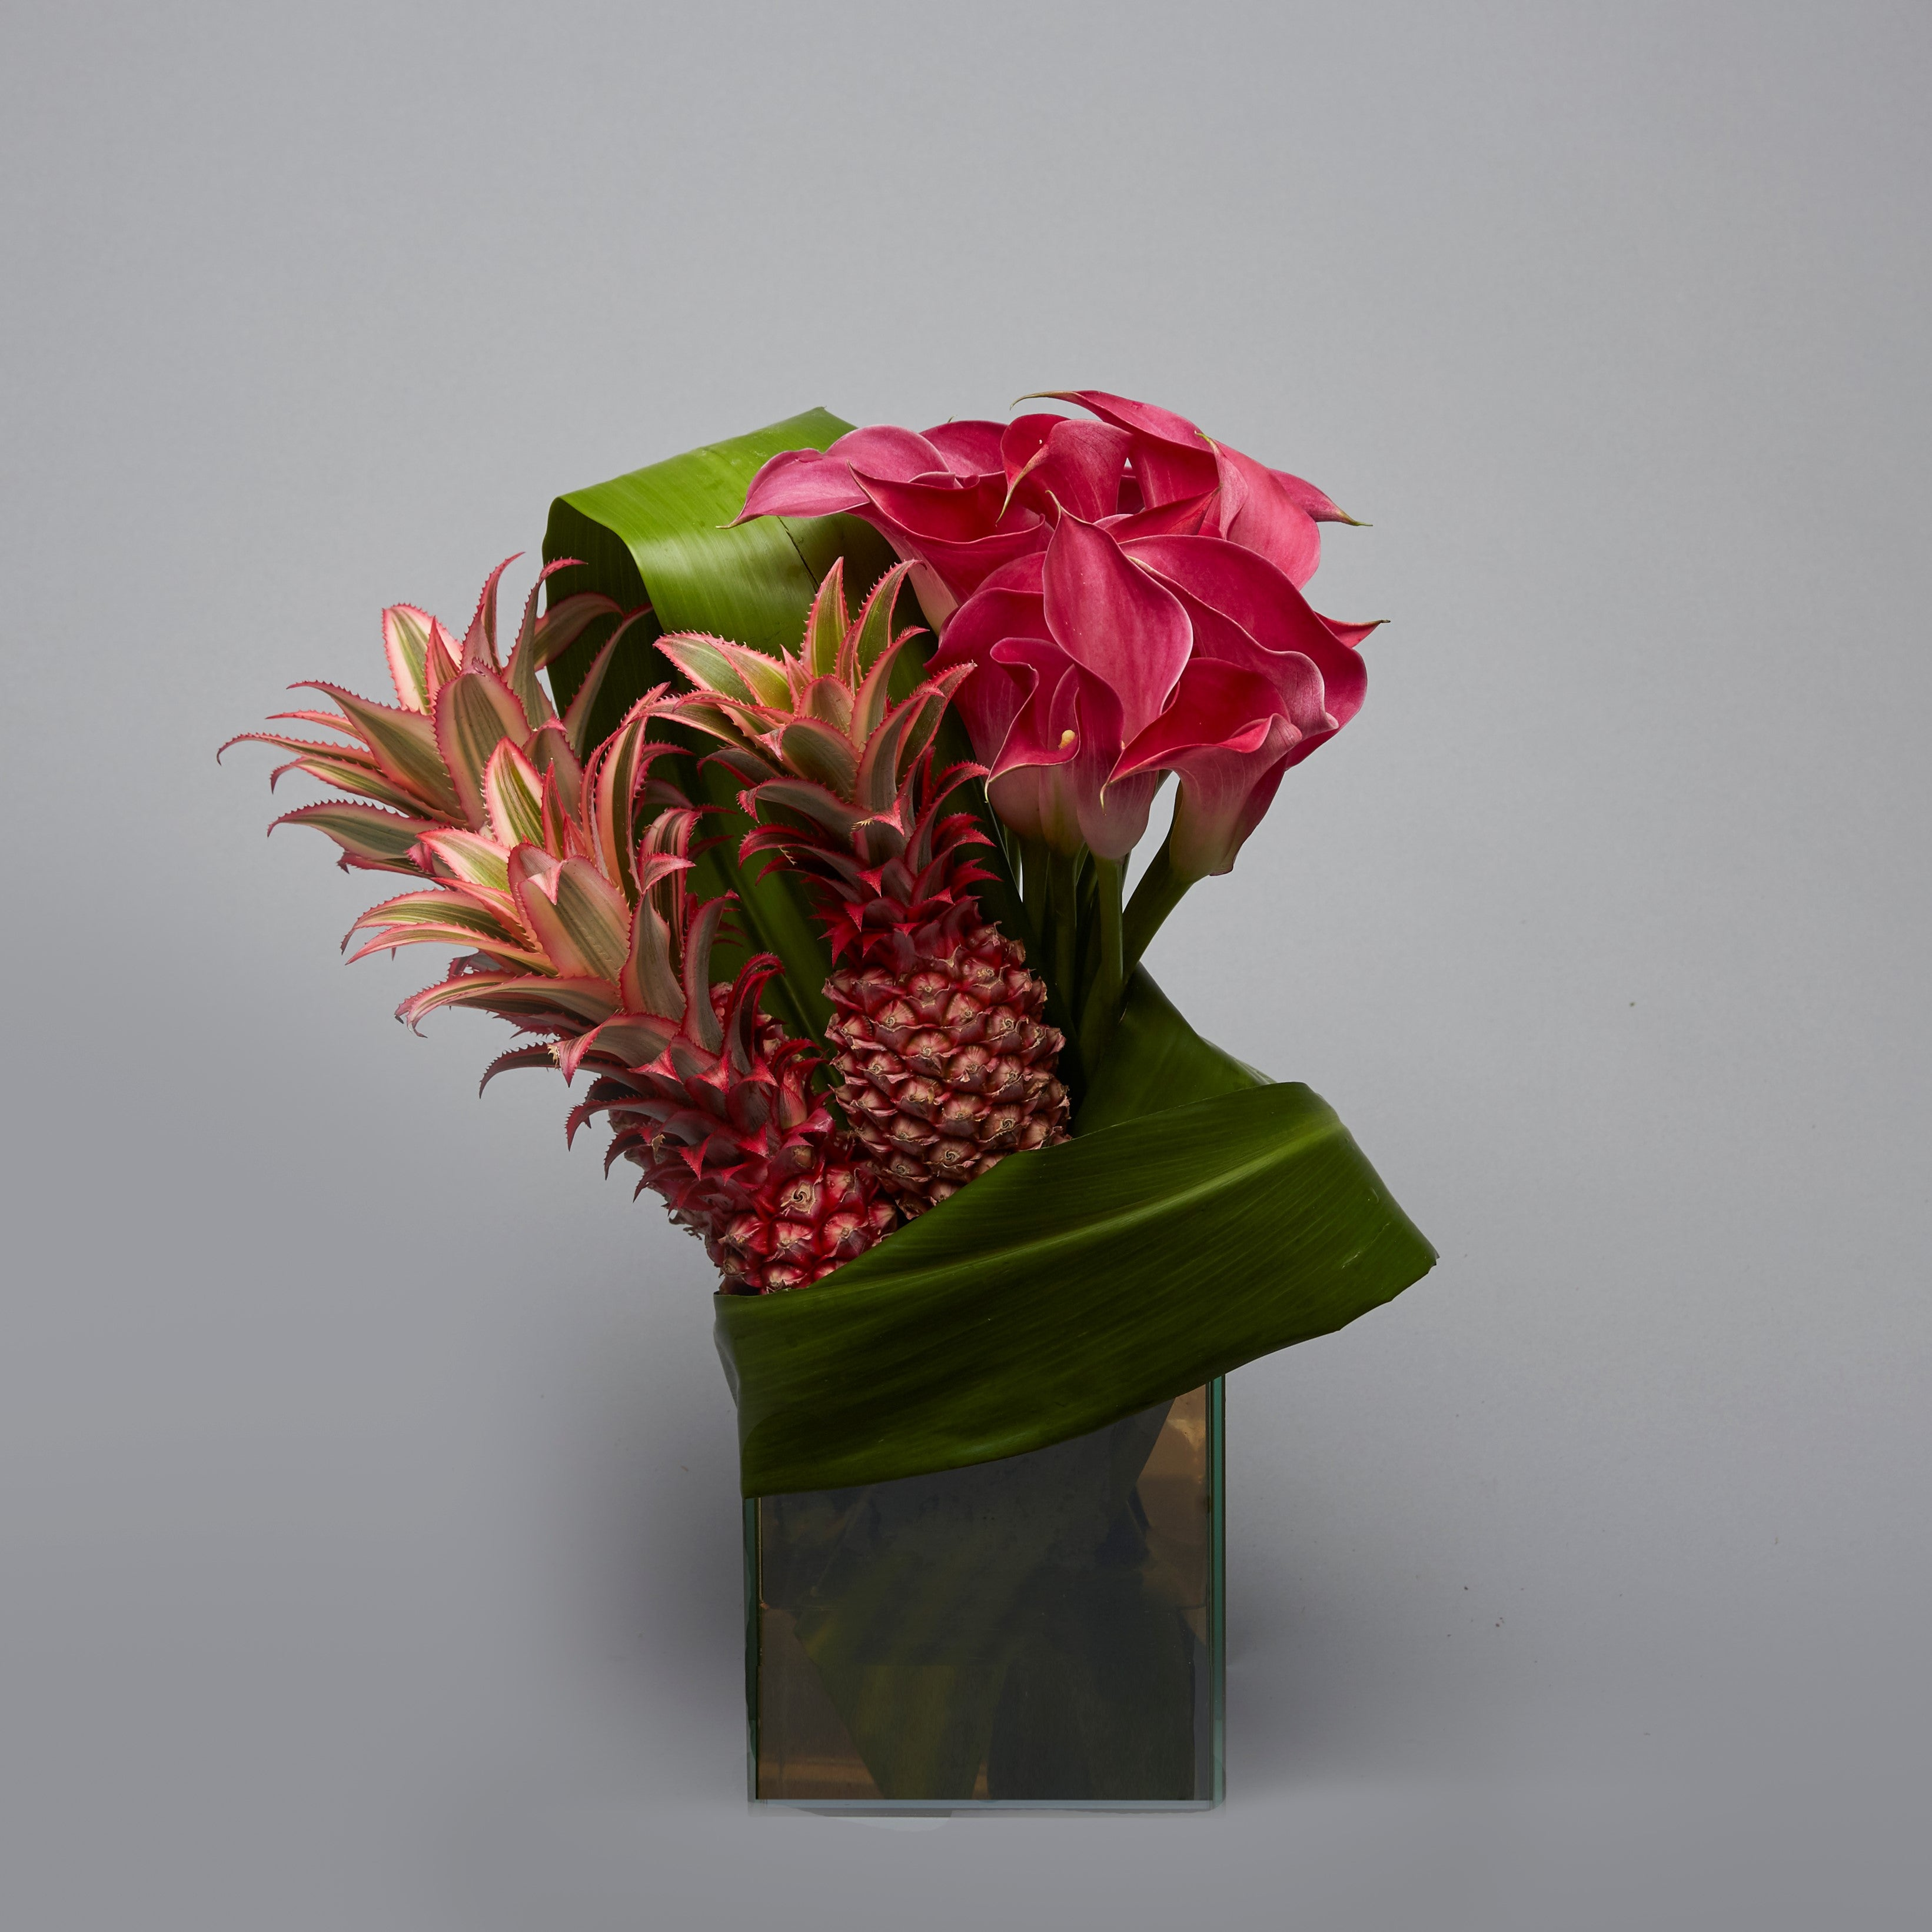 Ornamental Pineapple and Calla